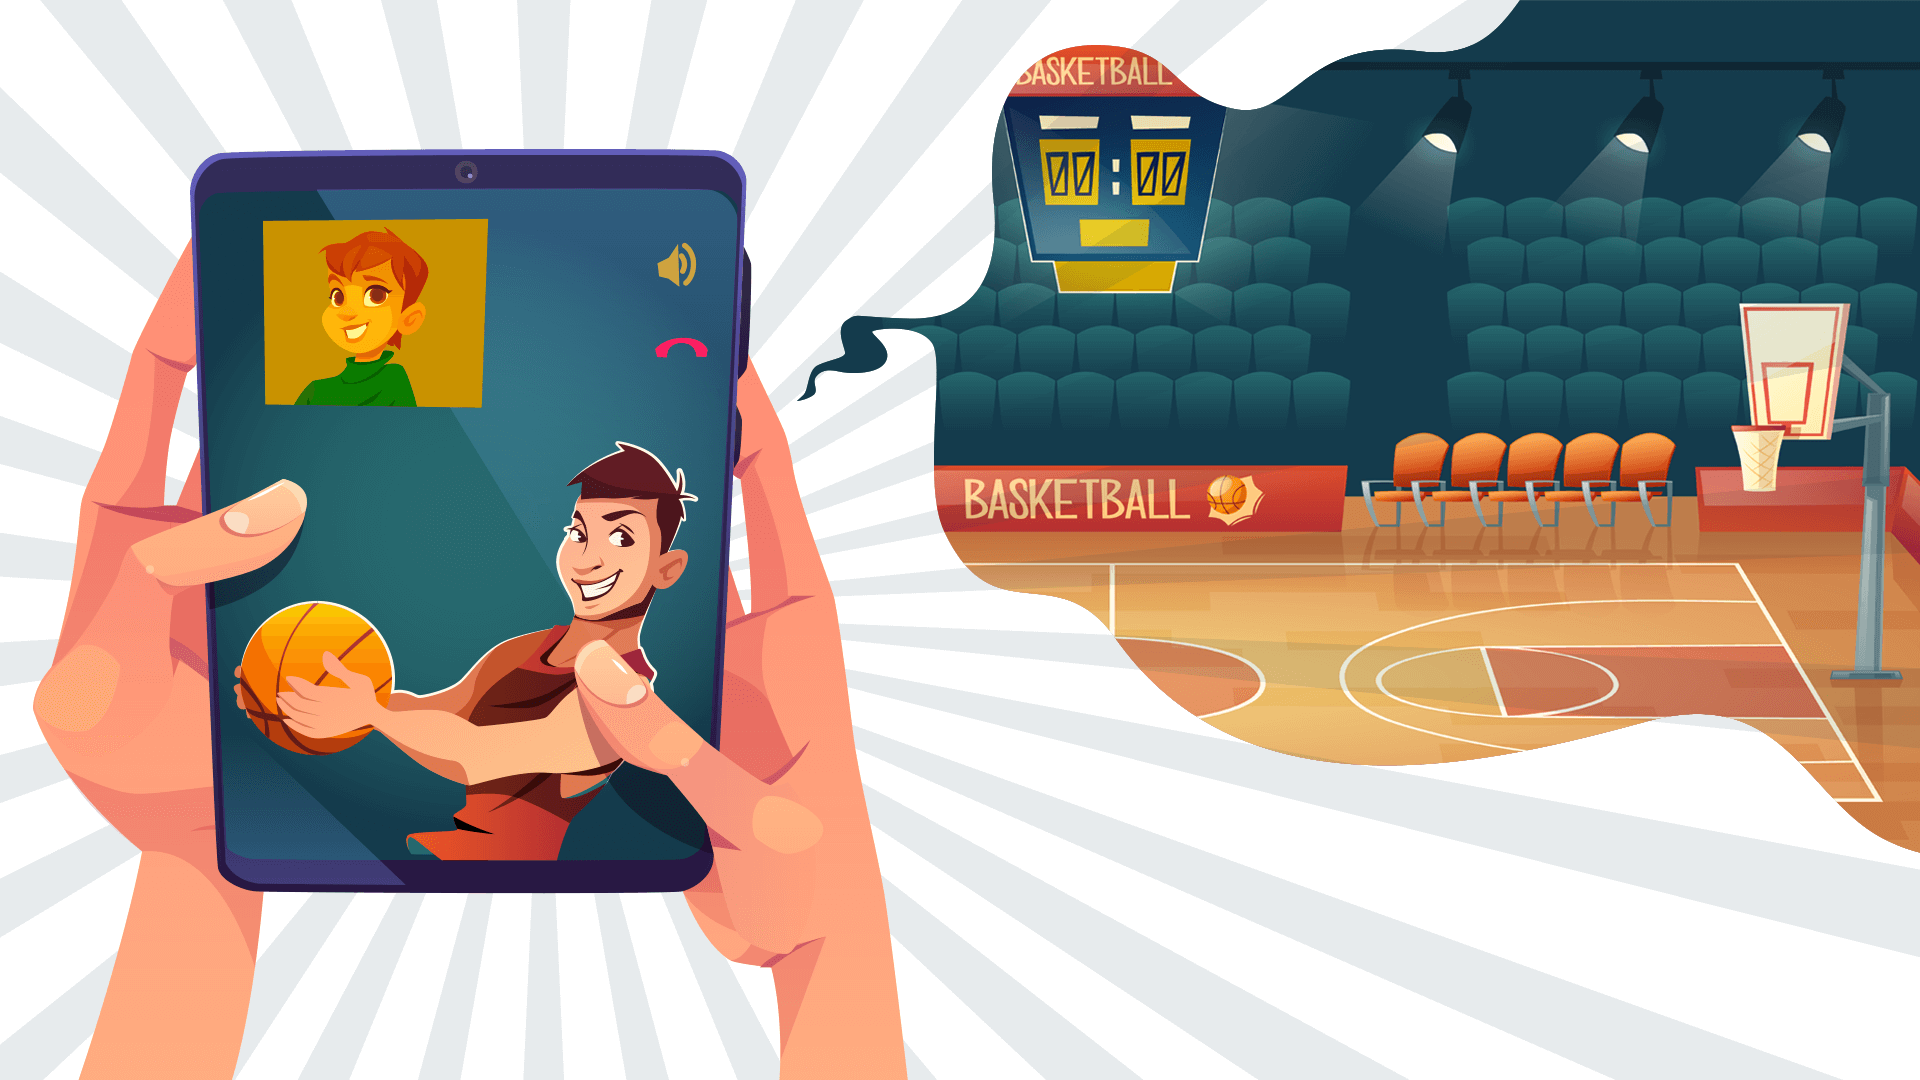 Sports apps for kids give an opportunity to focus their energy in a proper manner.